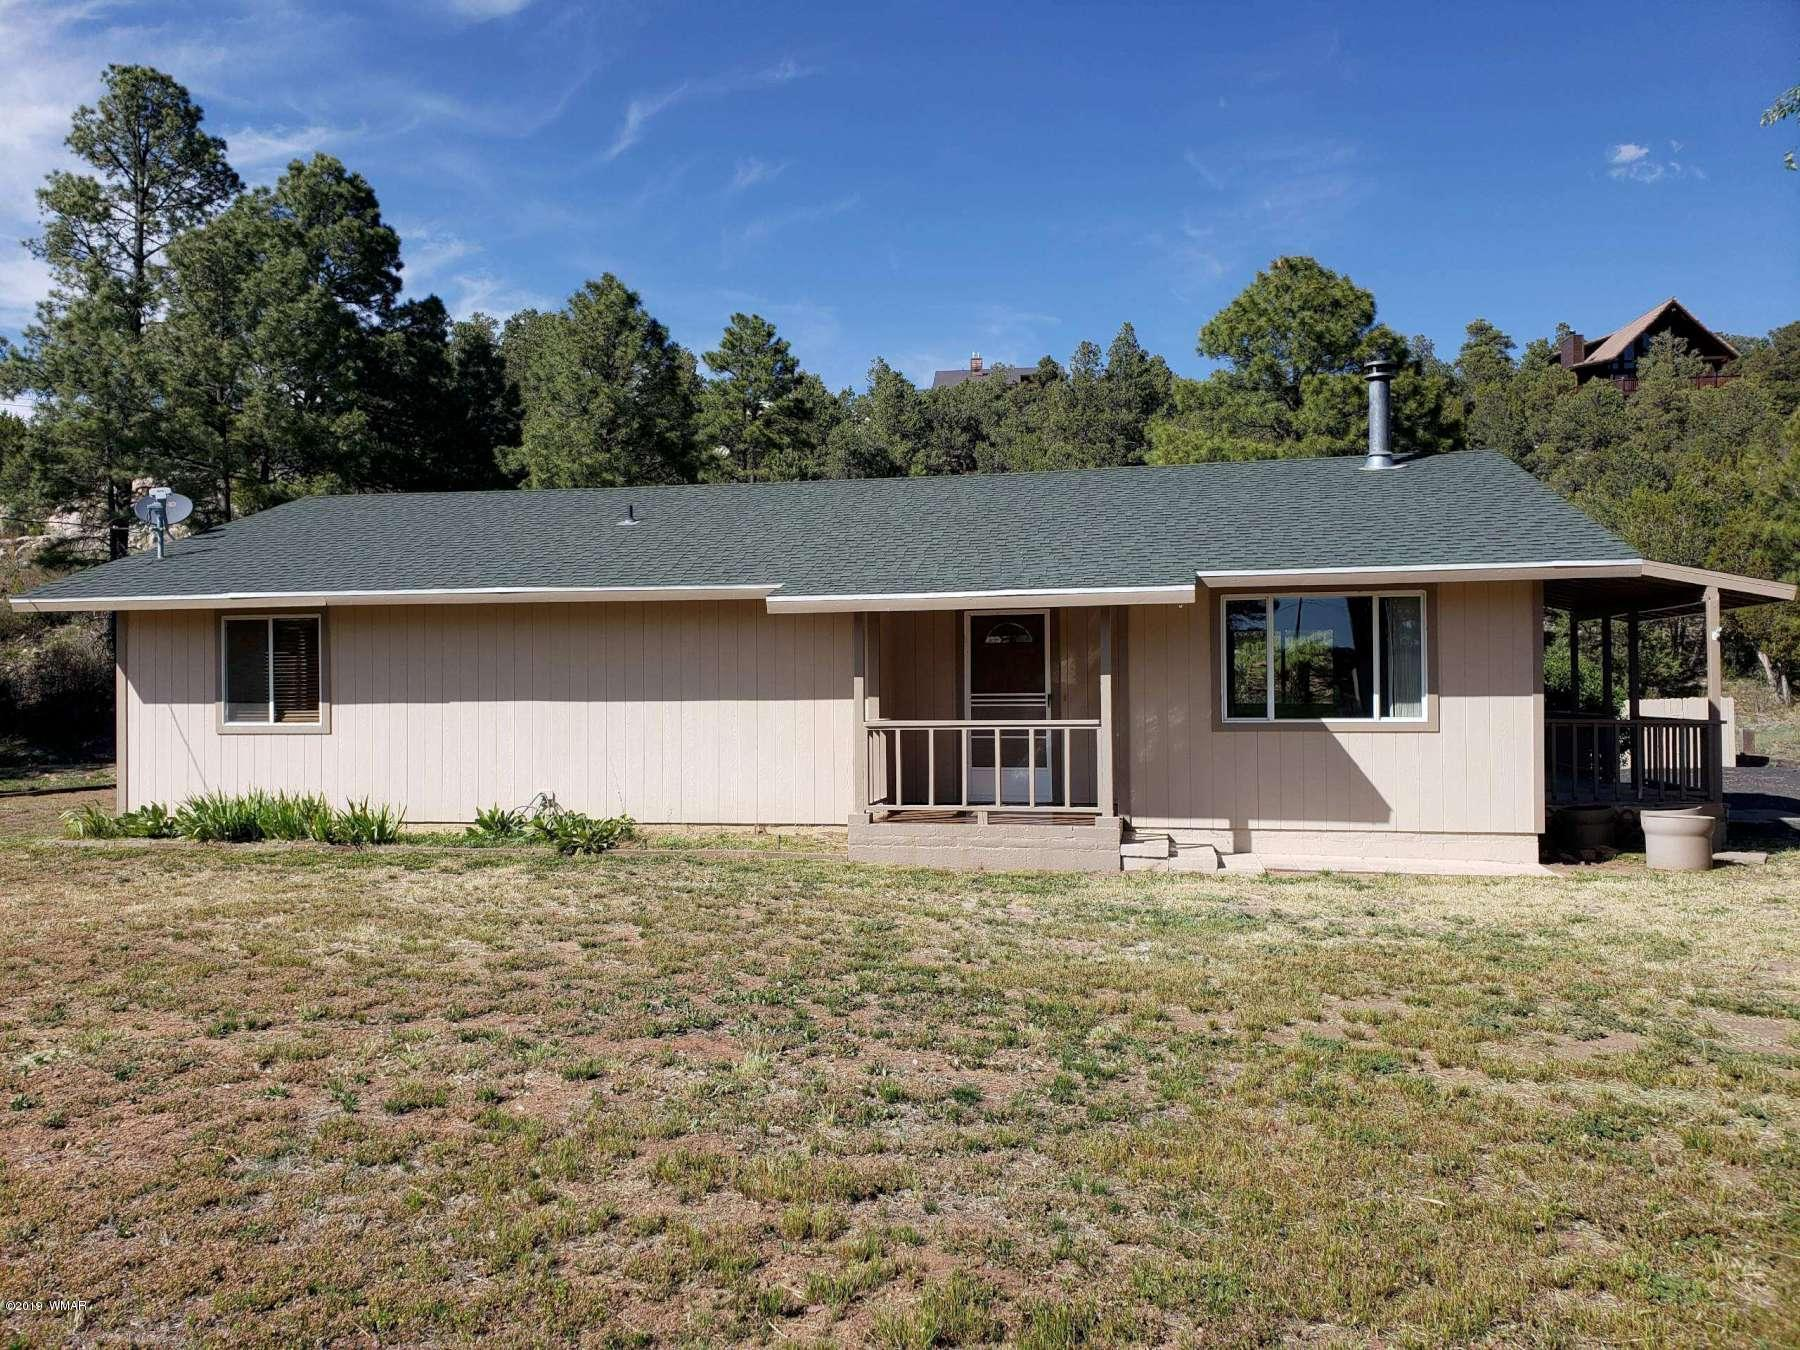 Beautifully Remodeled Single-level Year-round or Summer Retreat in a Beautiful Setting in Overgaard, Arizona.  This 2 Bedroom, 2 Bath Home has a Great-for-Entertaining Floor Plan and on Two Lots (APN 206-28-050).  This Home has recently been Painted Inside and Out, has New Flooring and New Tiled Bathrooms and Beautiful Decks to Enjoy the Beautiful Outdoors.  There is a Detached Garage and Extensions to Sit and Enjoy More of the Outdoors.